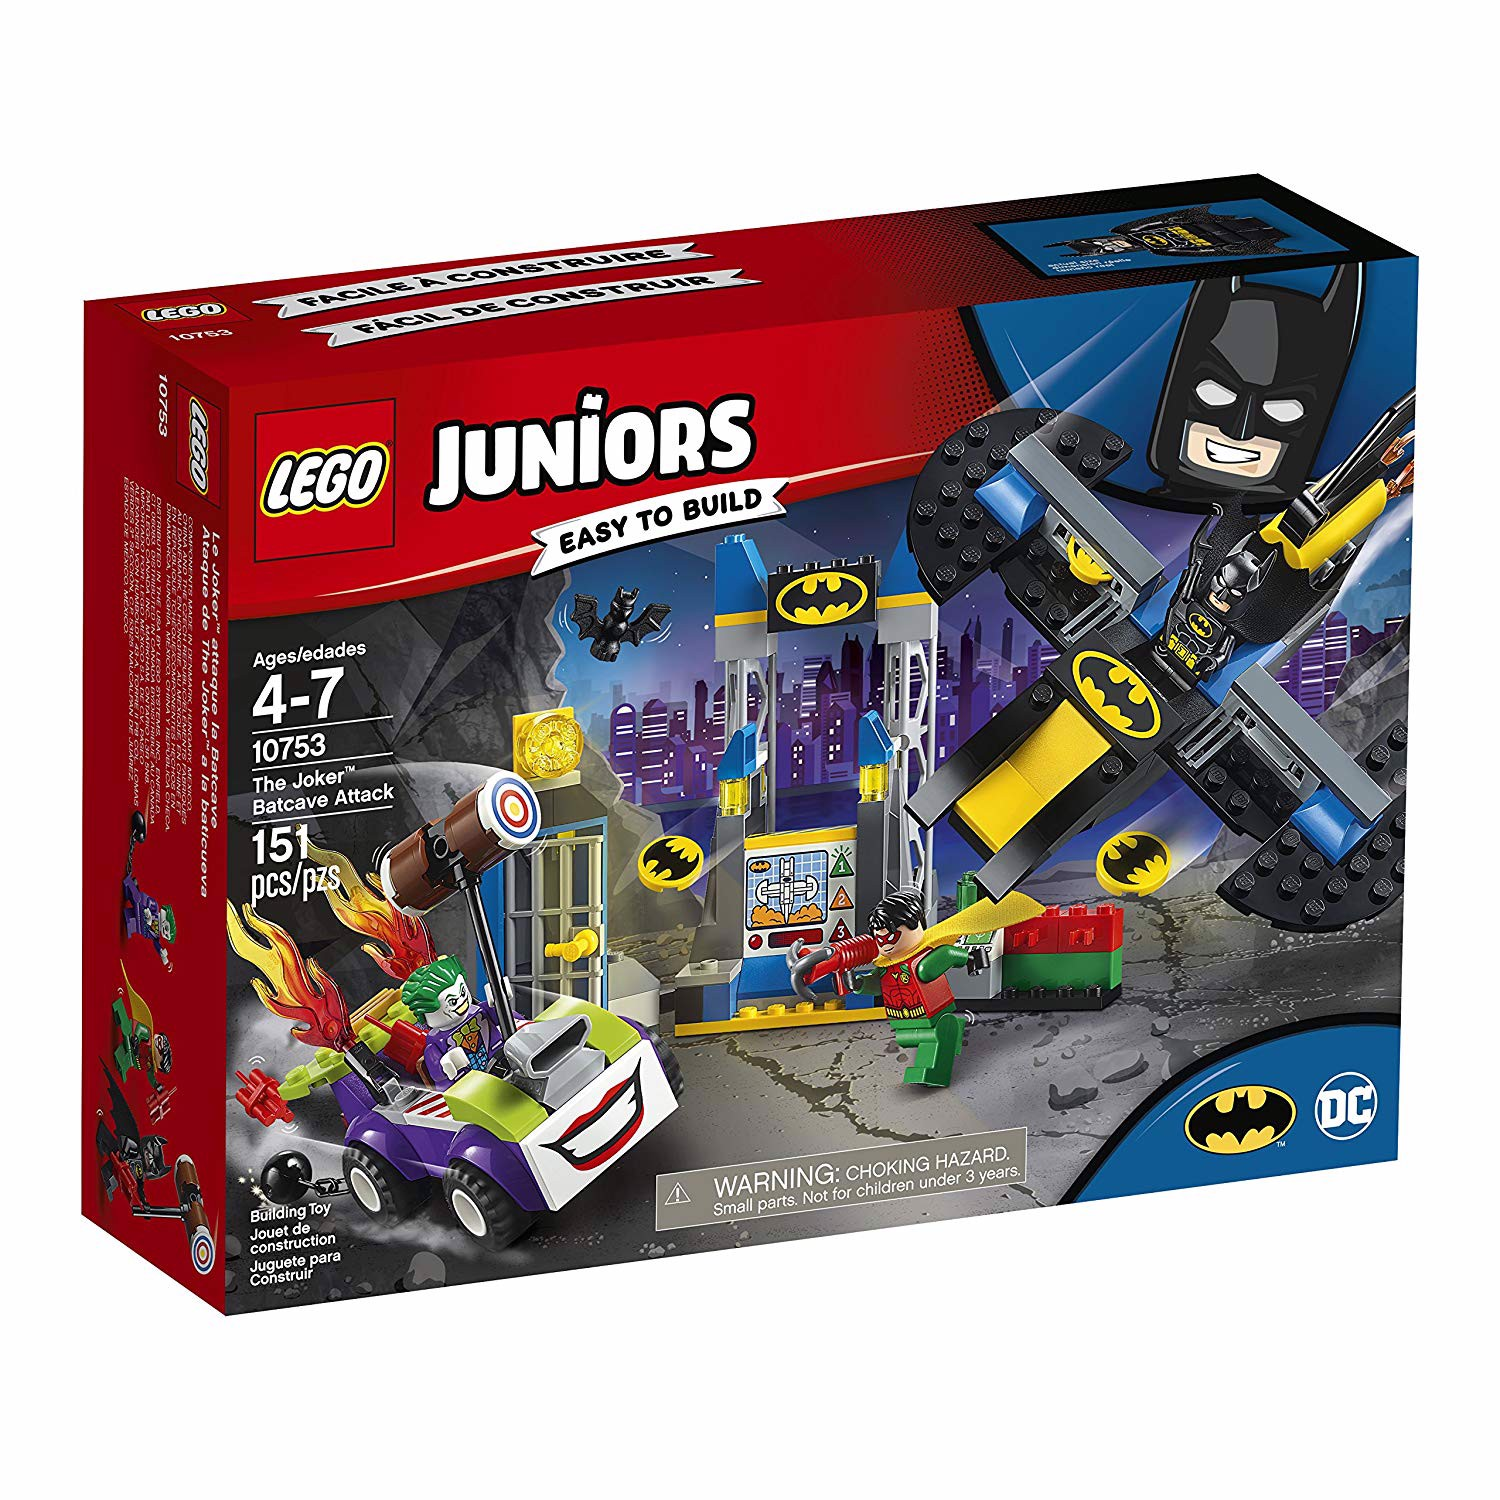 LEGO Juniors/4+ DC Super Heroes 10753 The Joker Batcave Attack